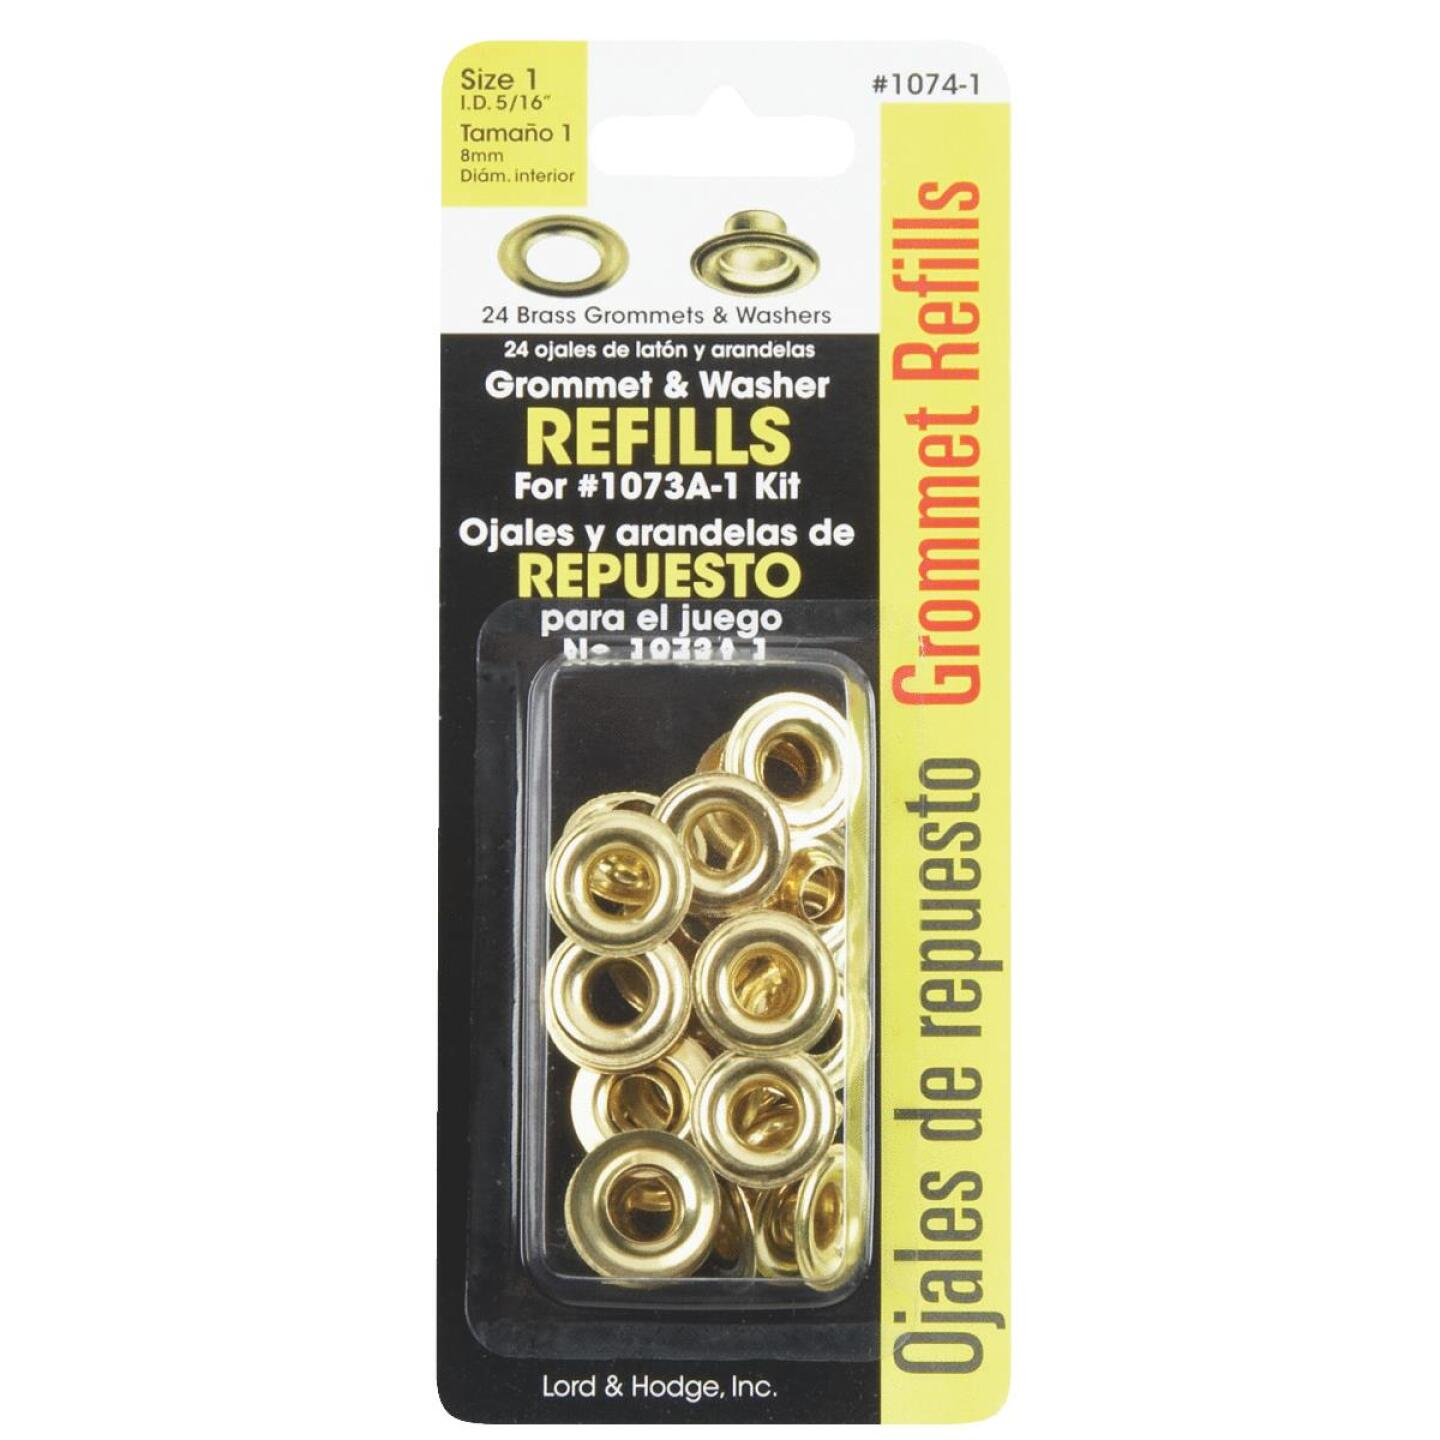 Lord & Hodge 5/16 In. Brass Grommet Refills (24 Ct.) Image 2